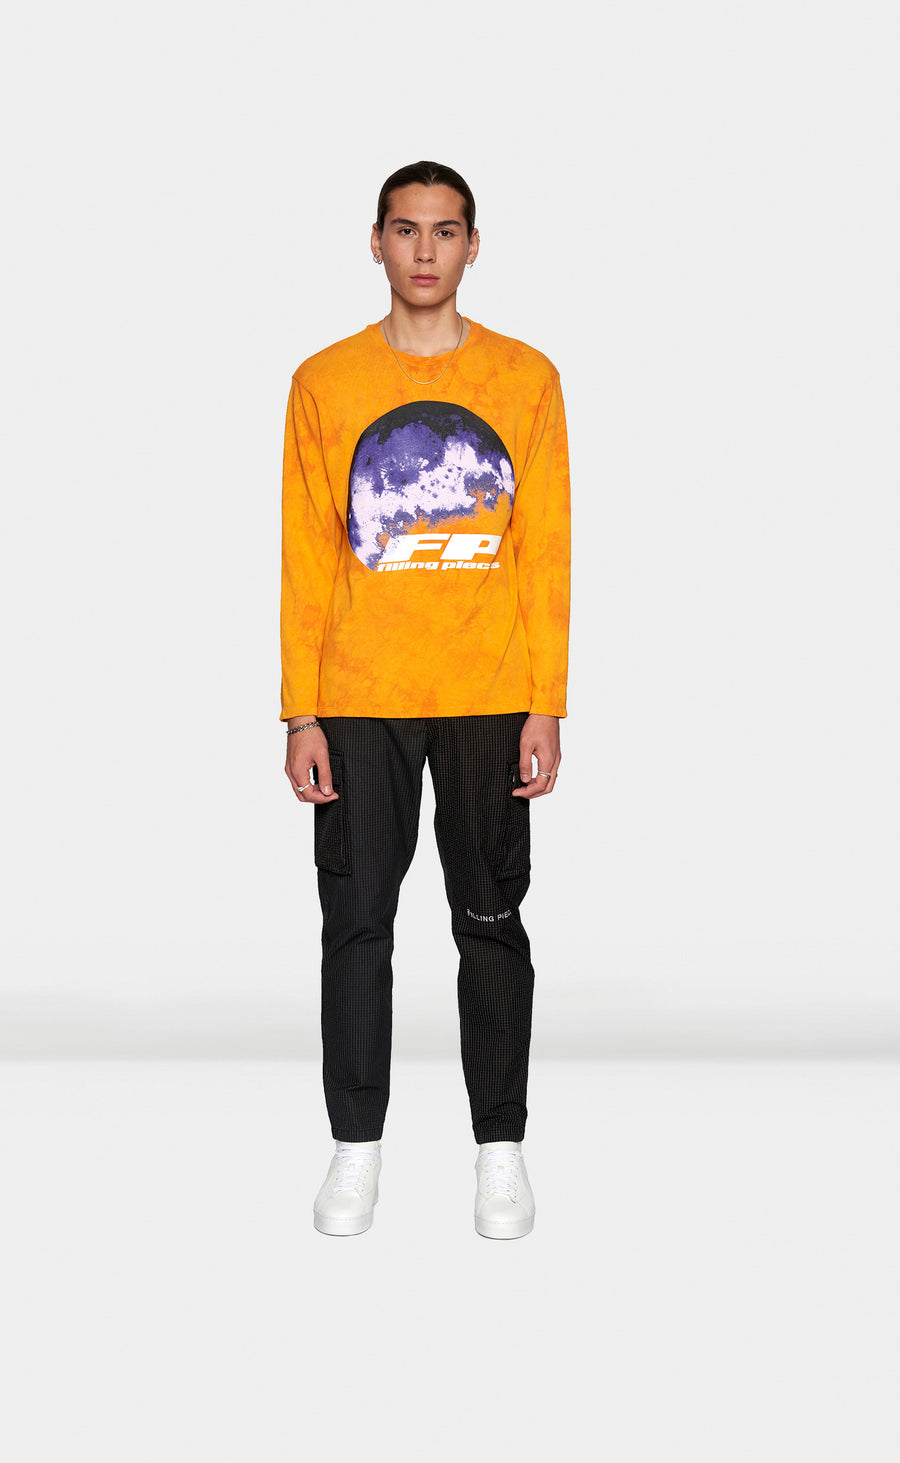 Graphic Longsleeve FP World Orange - men